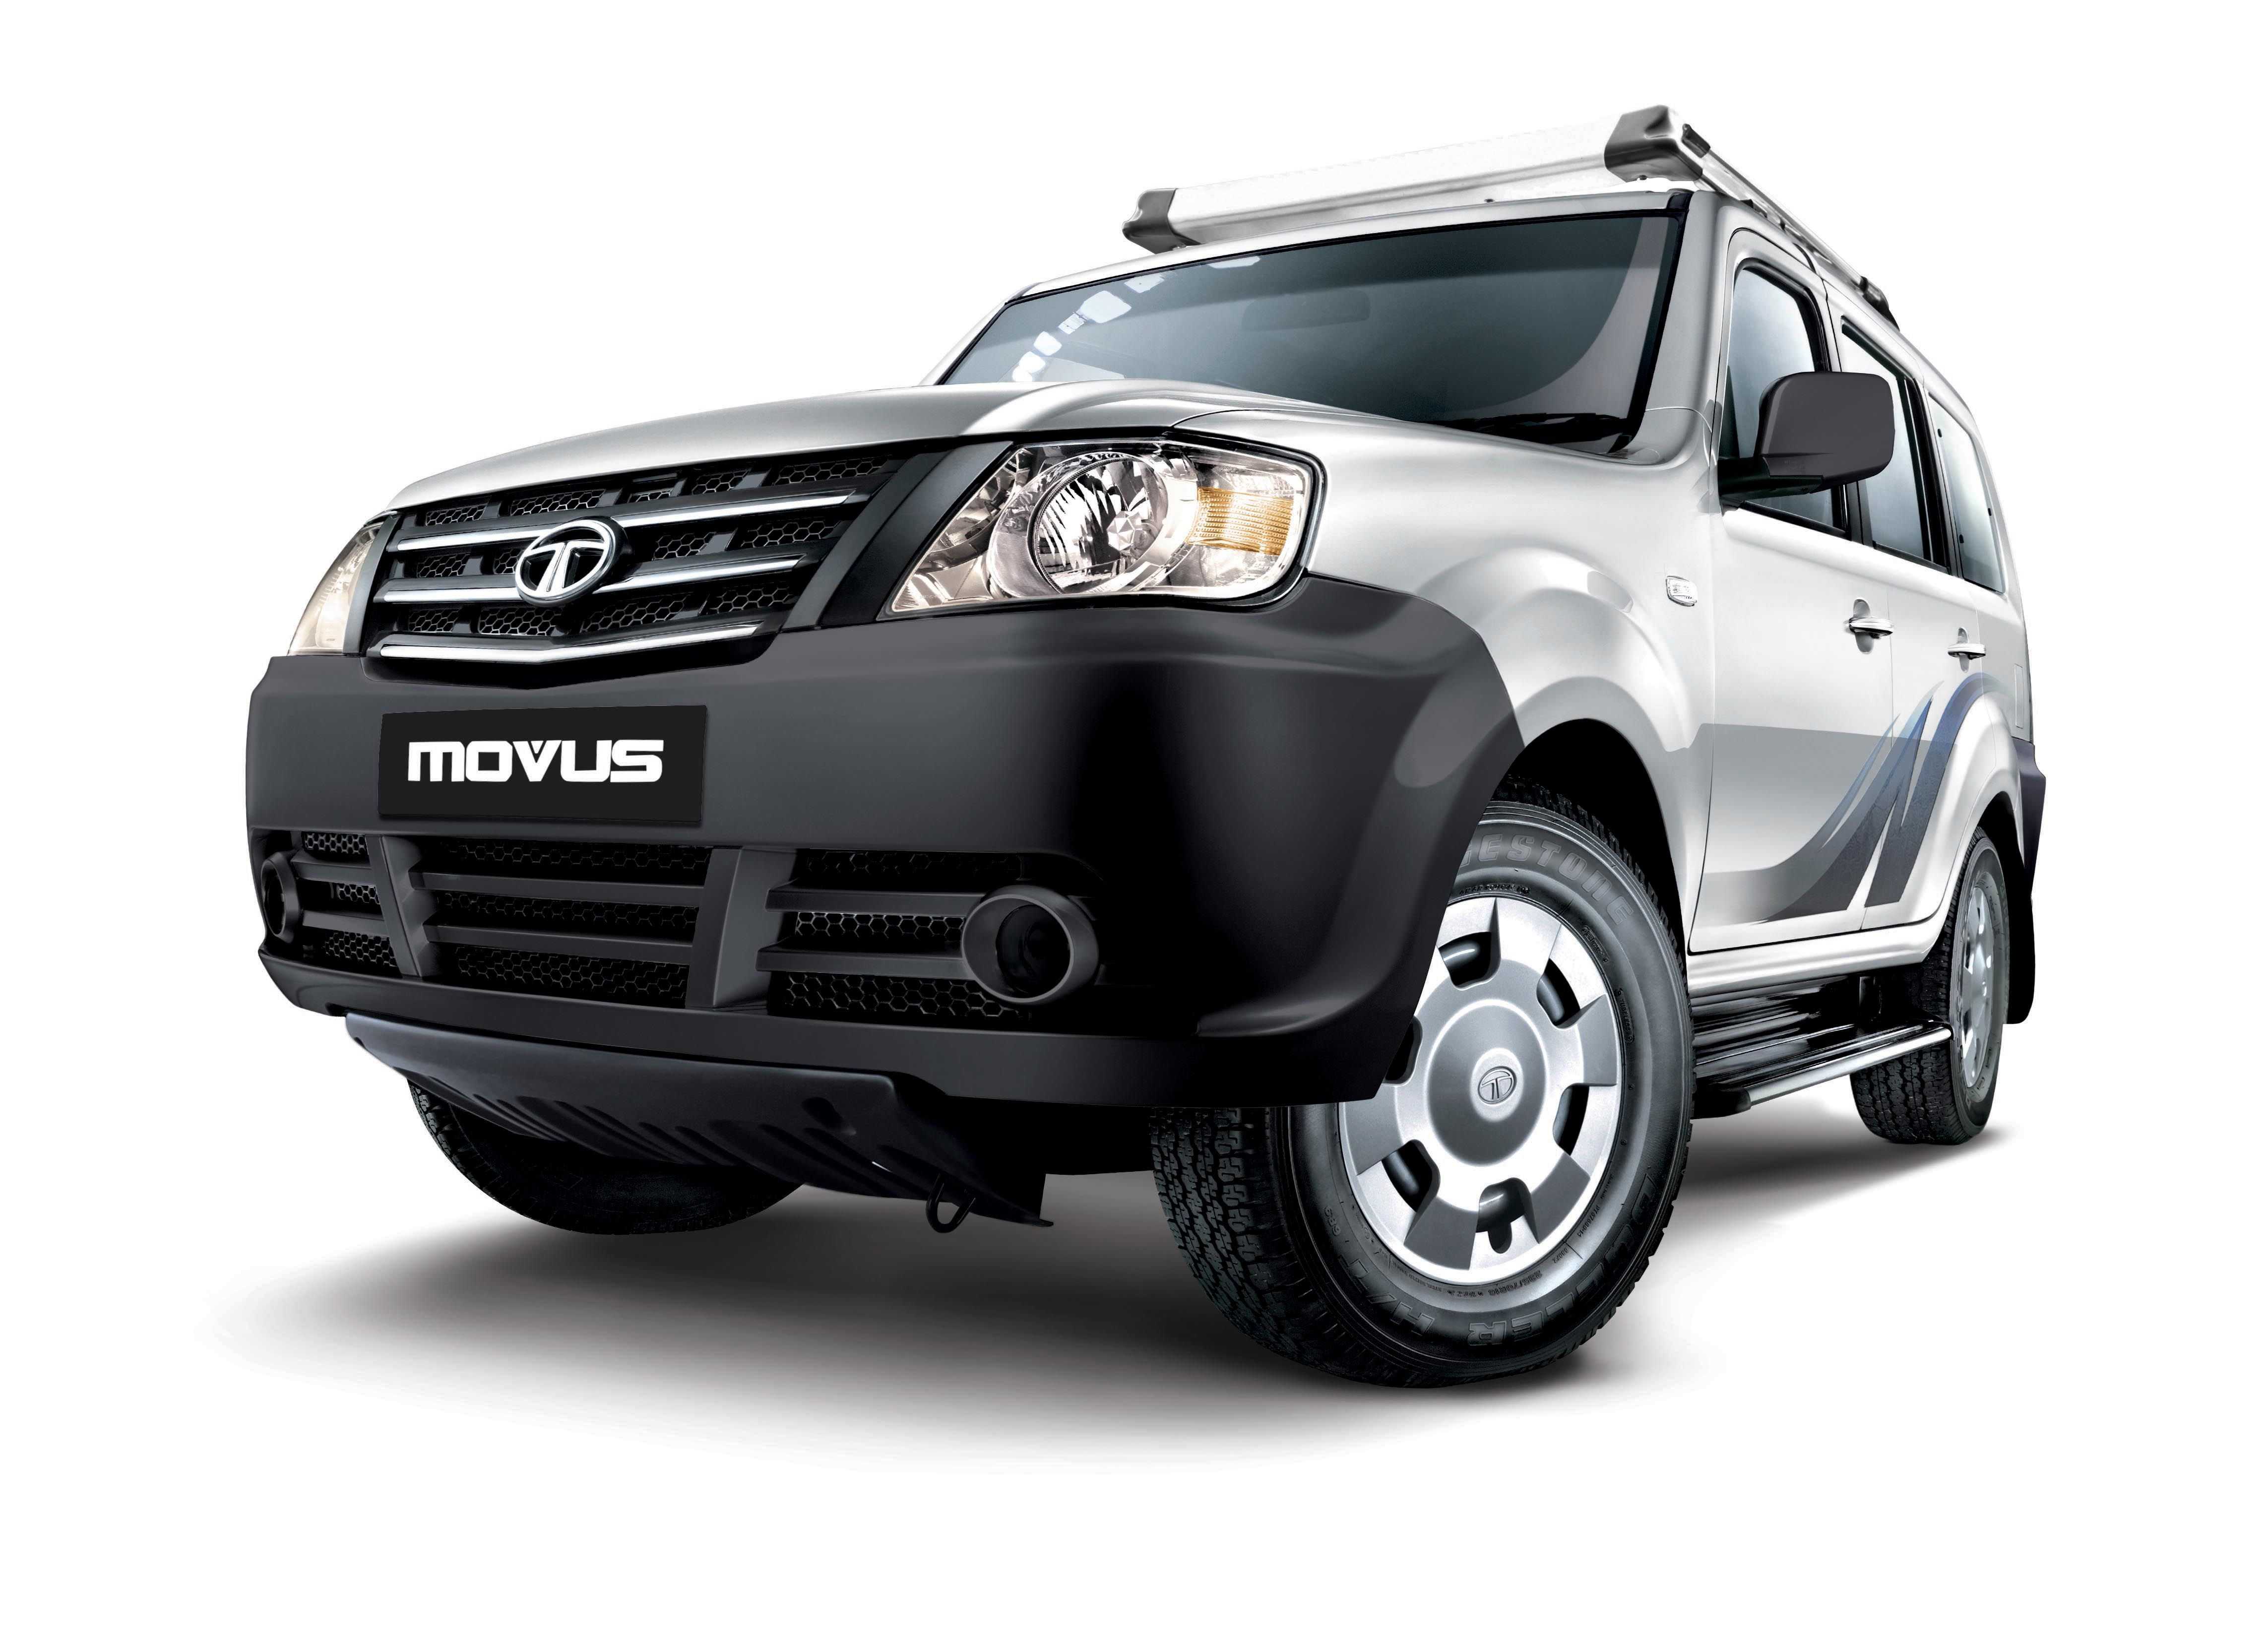 Movus by Tata Motors launched out Tata motors,